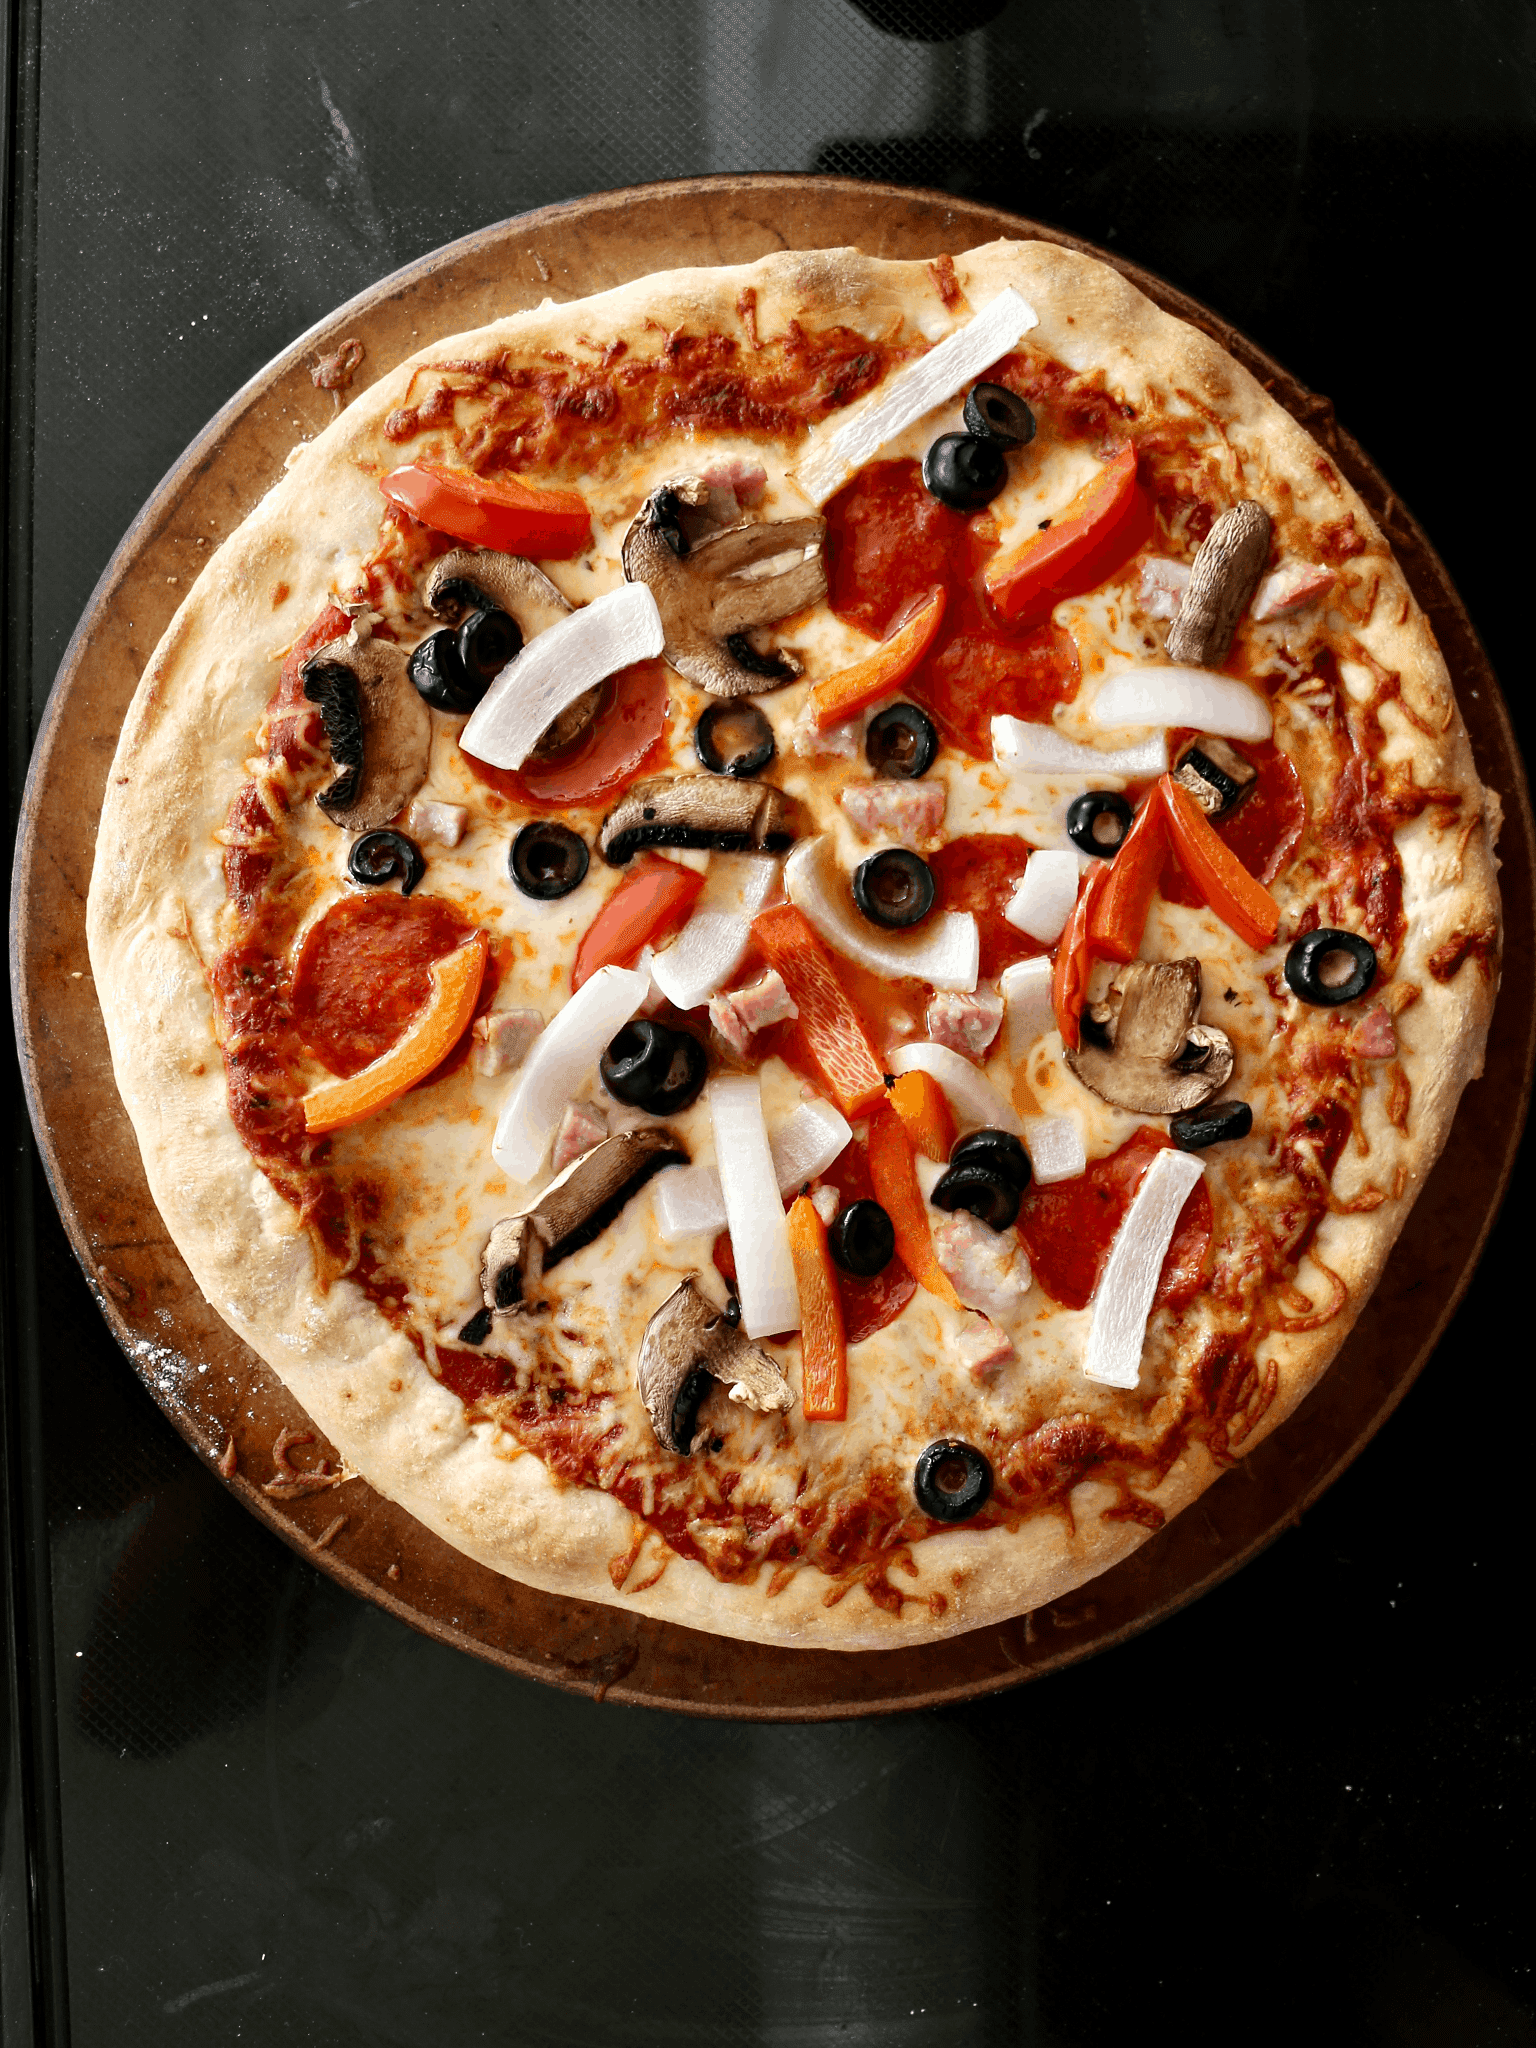 pizza with onions, bell peppers, olives, mushrooms, and pepperoni